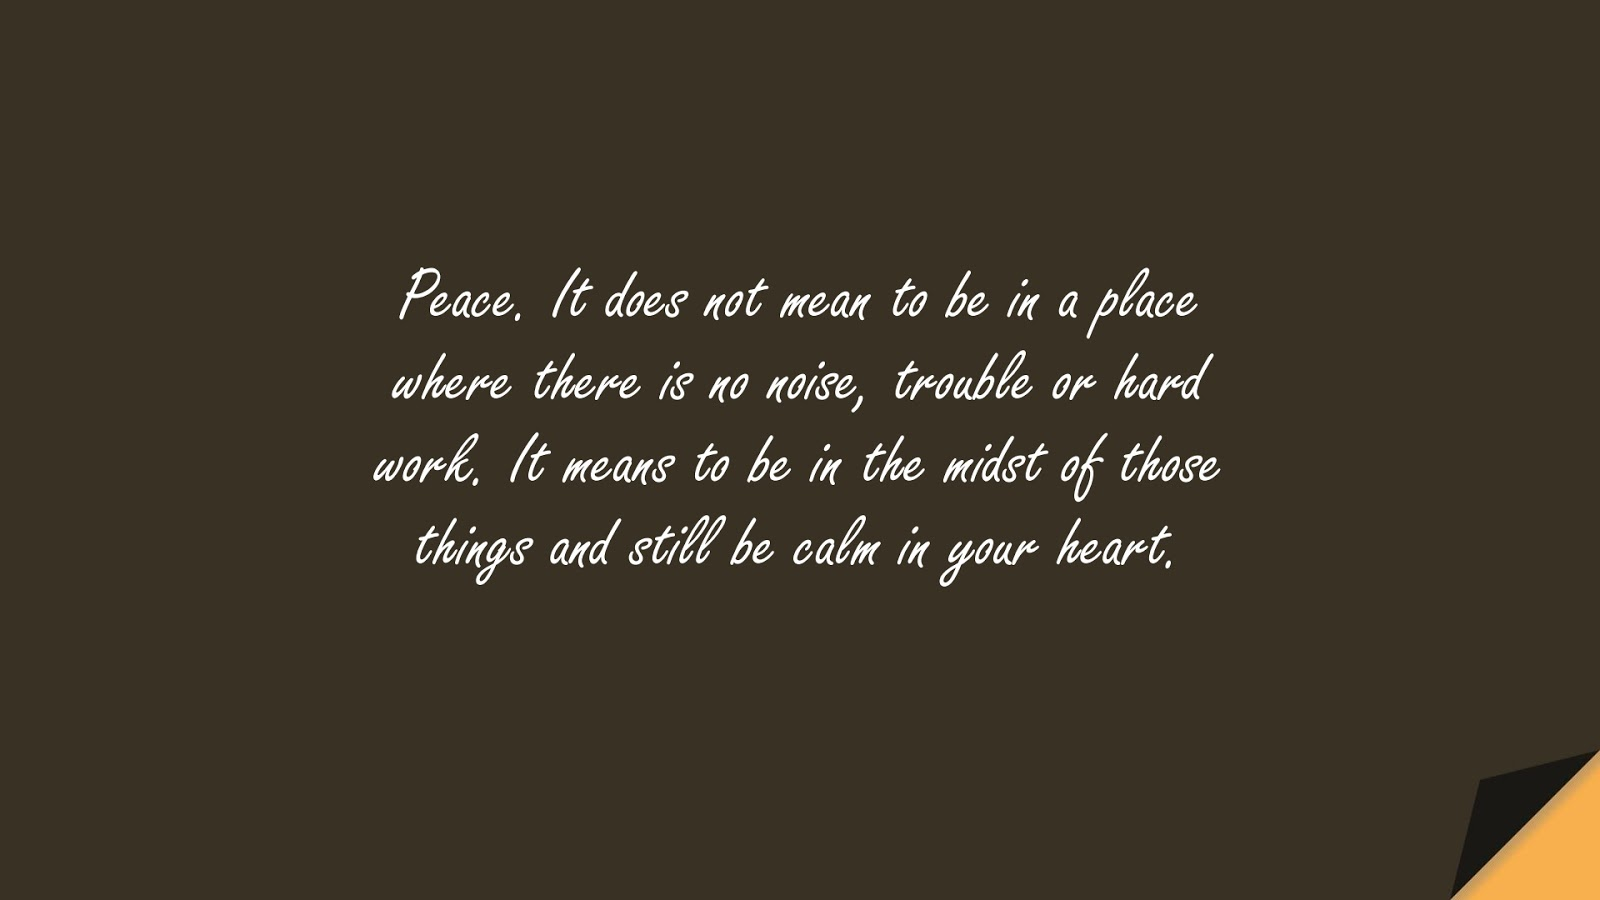 Peace. It does not mean to be in a place where there is no noise, trouble or hard work. It means to be in the midst of those things and still be calm in your heart.FALSE